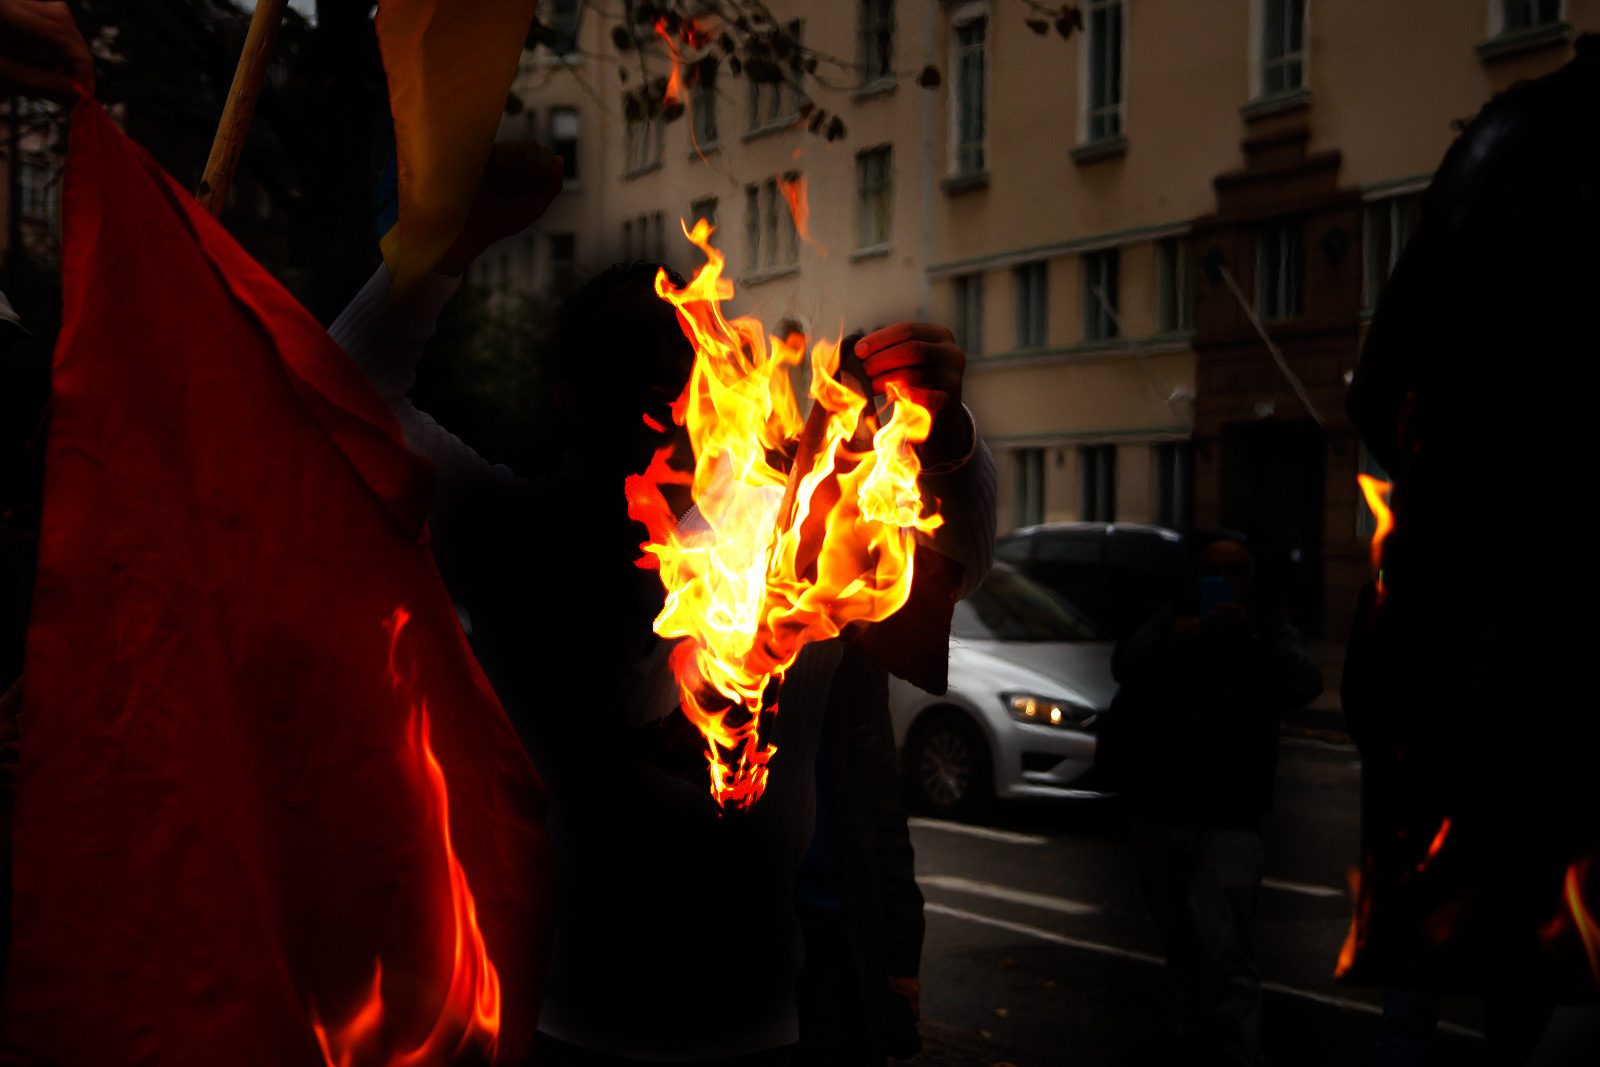 Protesters Steal Iran's Flag and Light it on Fire – Police Catch Four in a Demonstration in Eastern Helsinki on Monday Afternoon